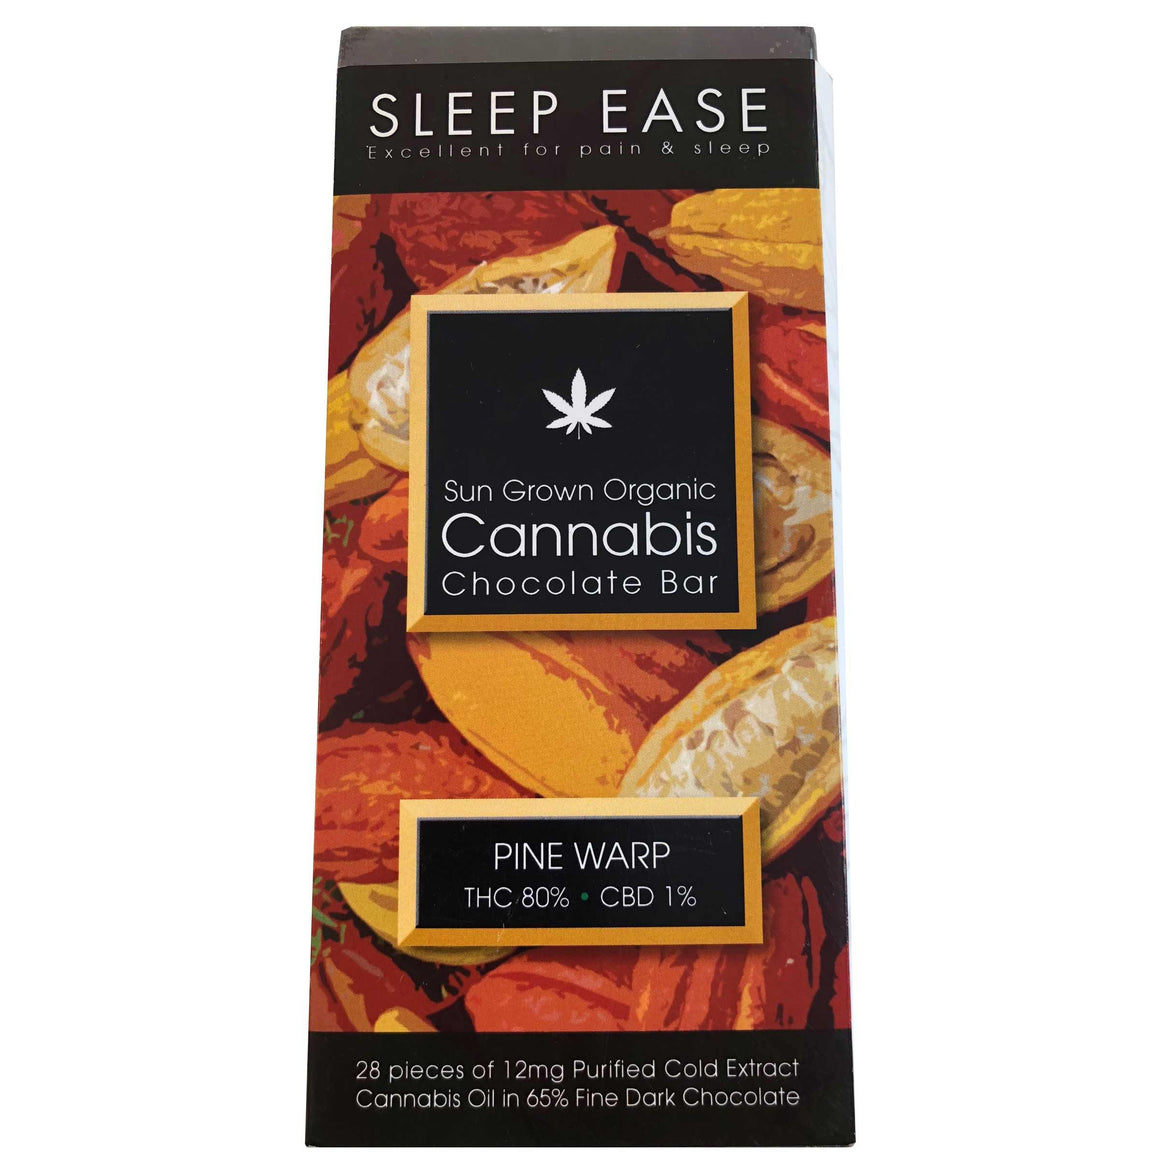 SLEEP EASE - Sun Grown Organic Cannabis Chocolate Bar